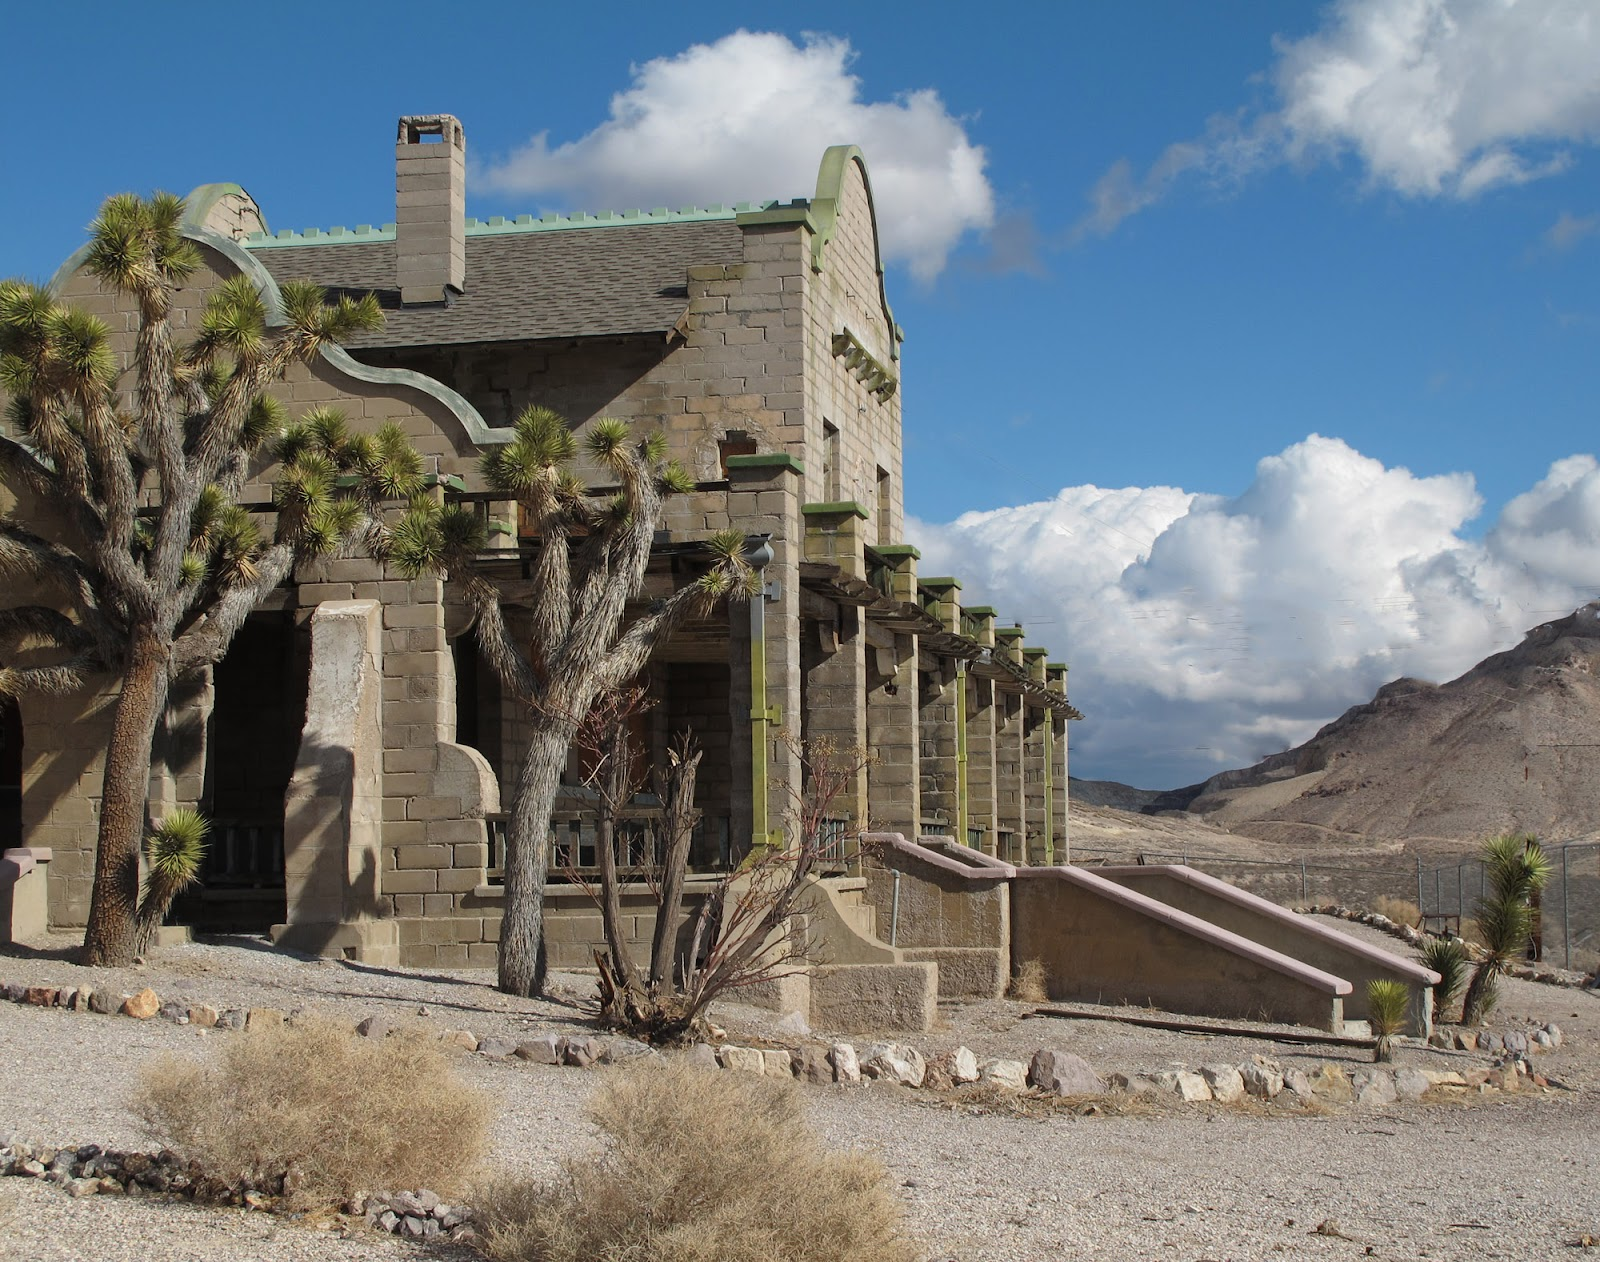 The Ghost Town of Rhyolite | The Independent Tourist |Rhyolite Ghost Town